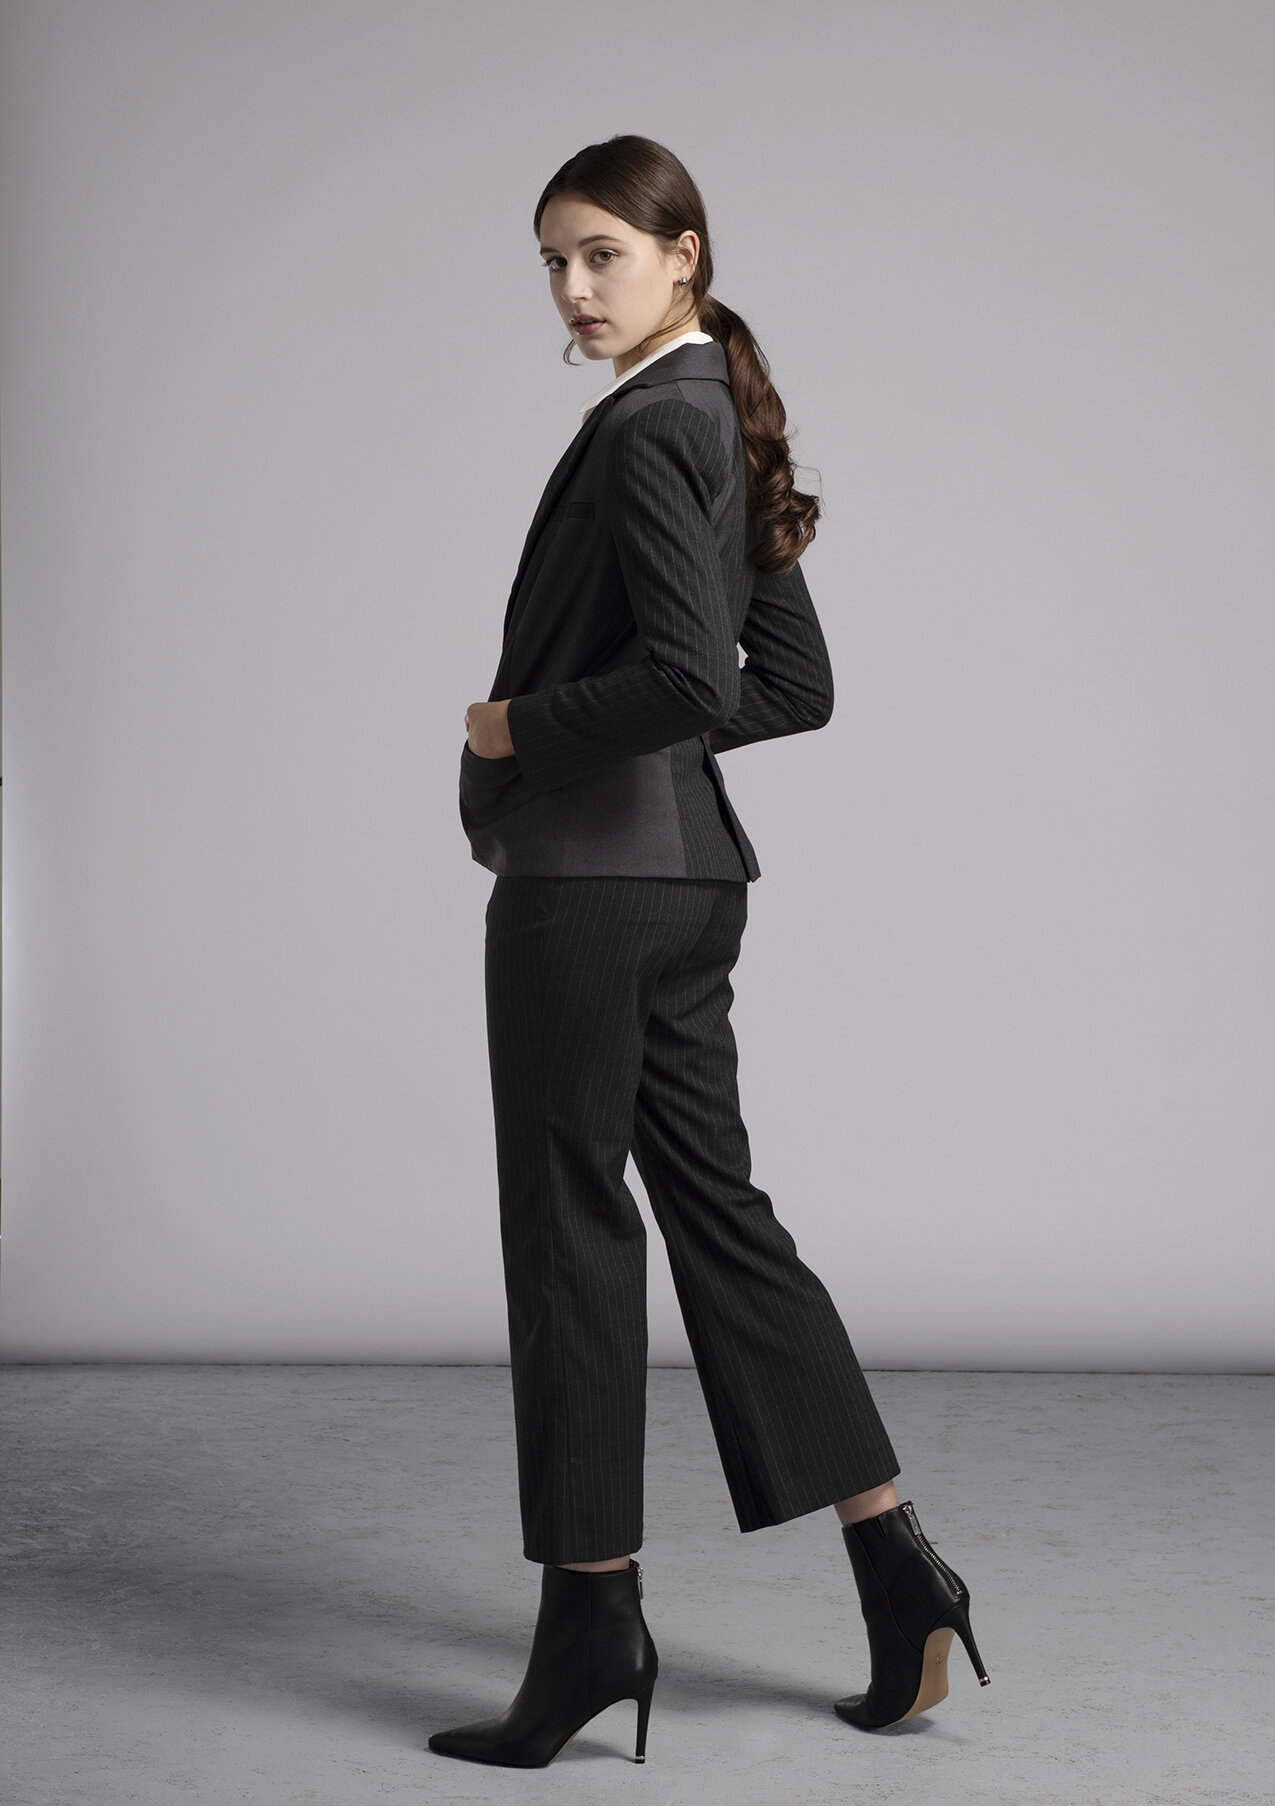 Women's made-to-measure grey pin stripe suit